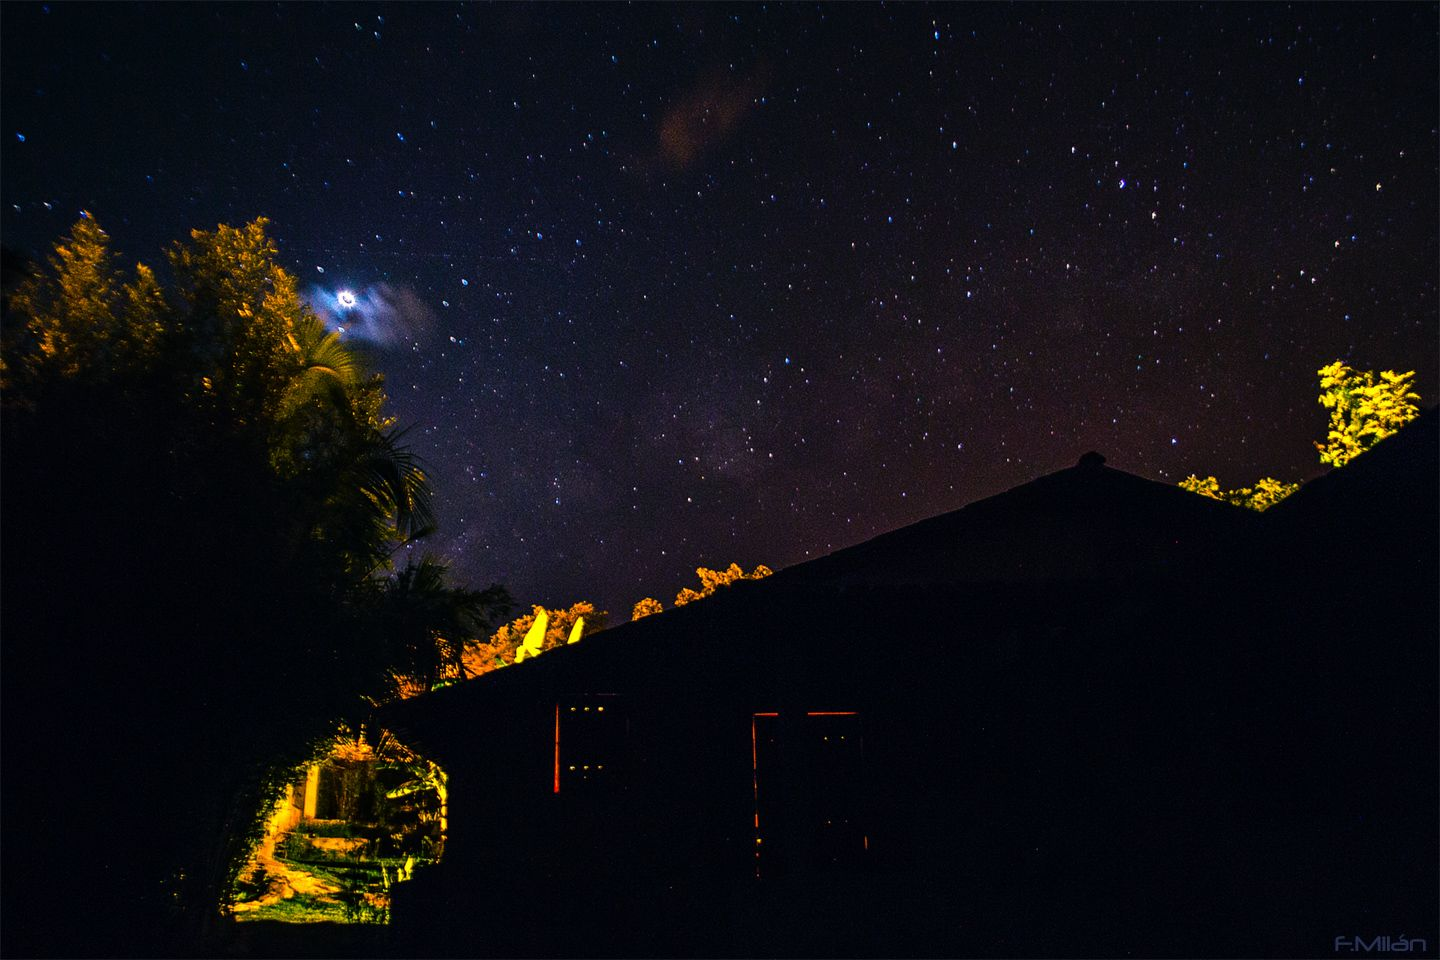 My house in Goias State - Brazil Venus is seen partially hidden by some passing clouds... Experimental night HDR